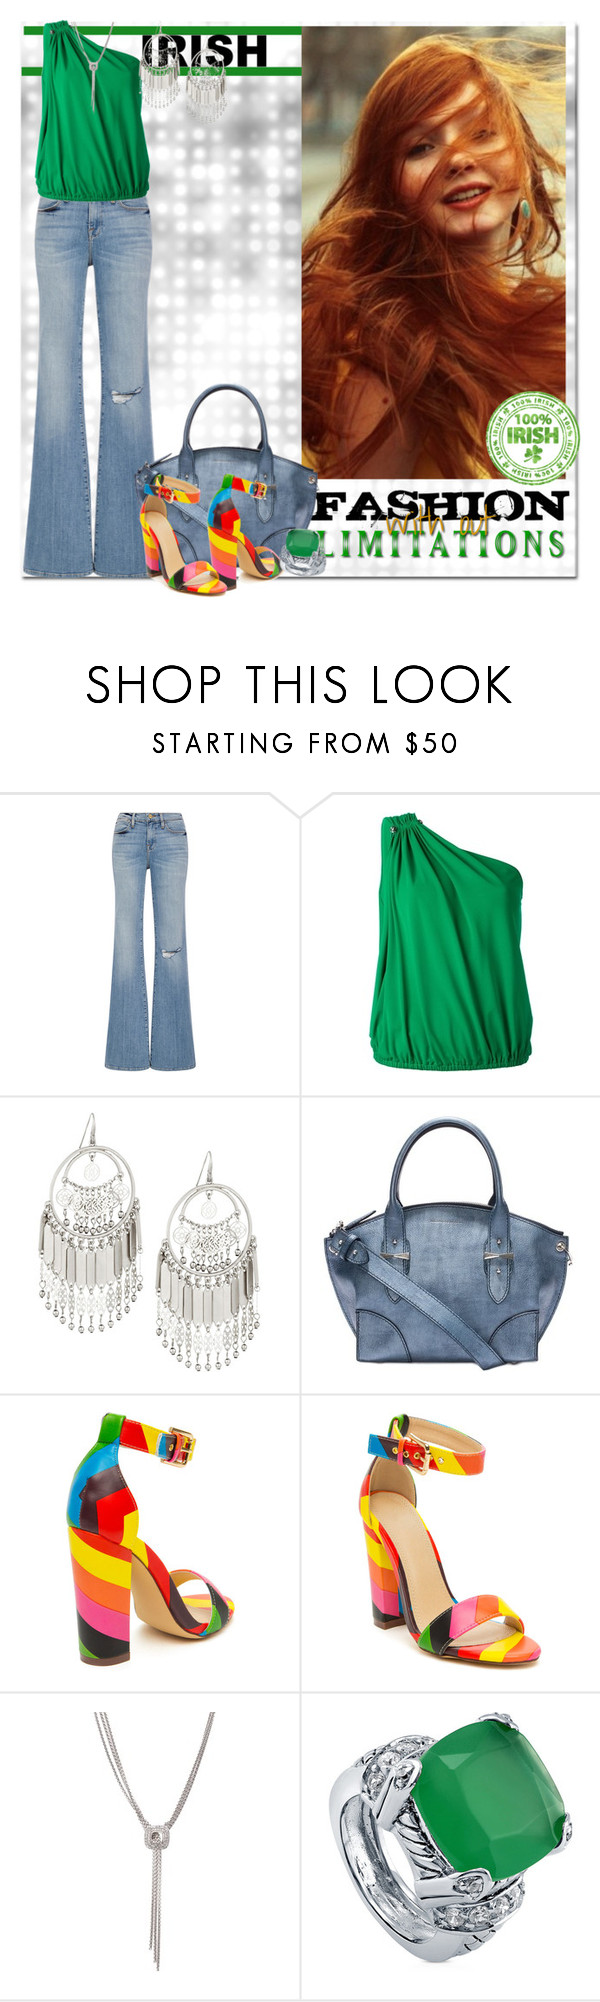 """""""Lucky Trend"""" by msmith801 ❤ liked on Polyvore featuring Frame Denim, Lanvin, Lydell NYC, Alexander McQueen, David Yurman and BERRICLE"""